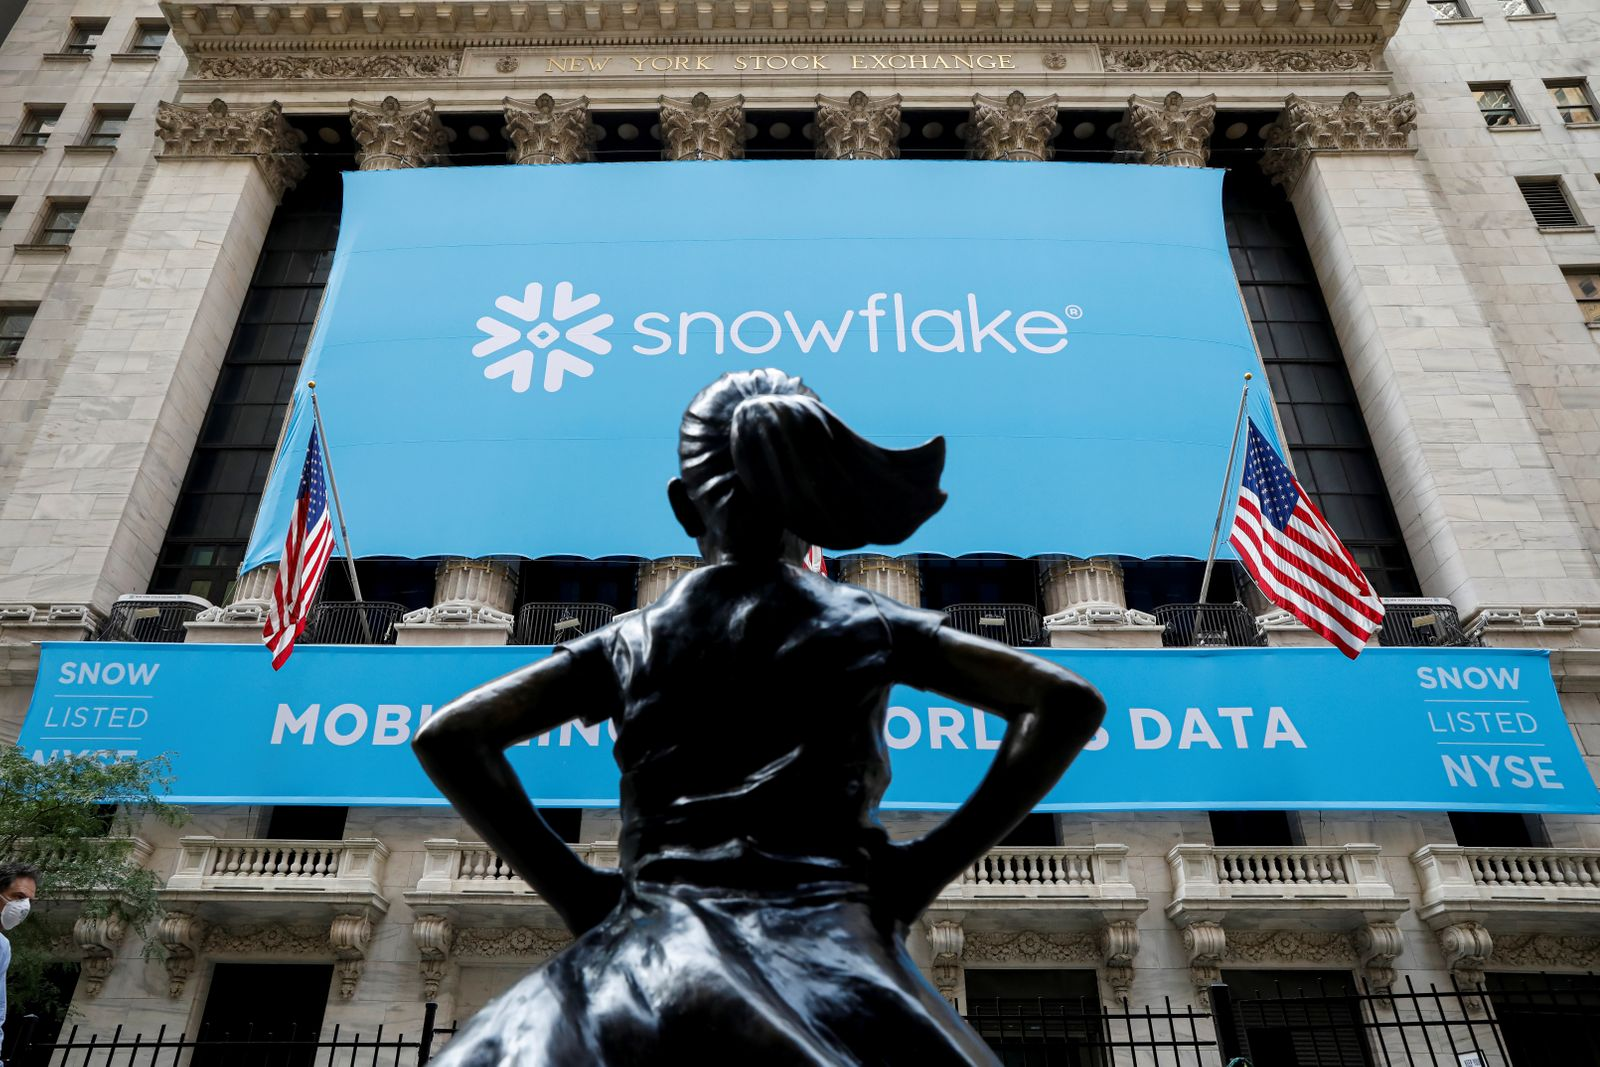 A banner for Snowflake Inc. is displayed celebrating the company's IPO at the NYSE in New York